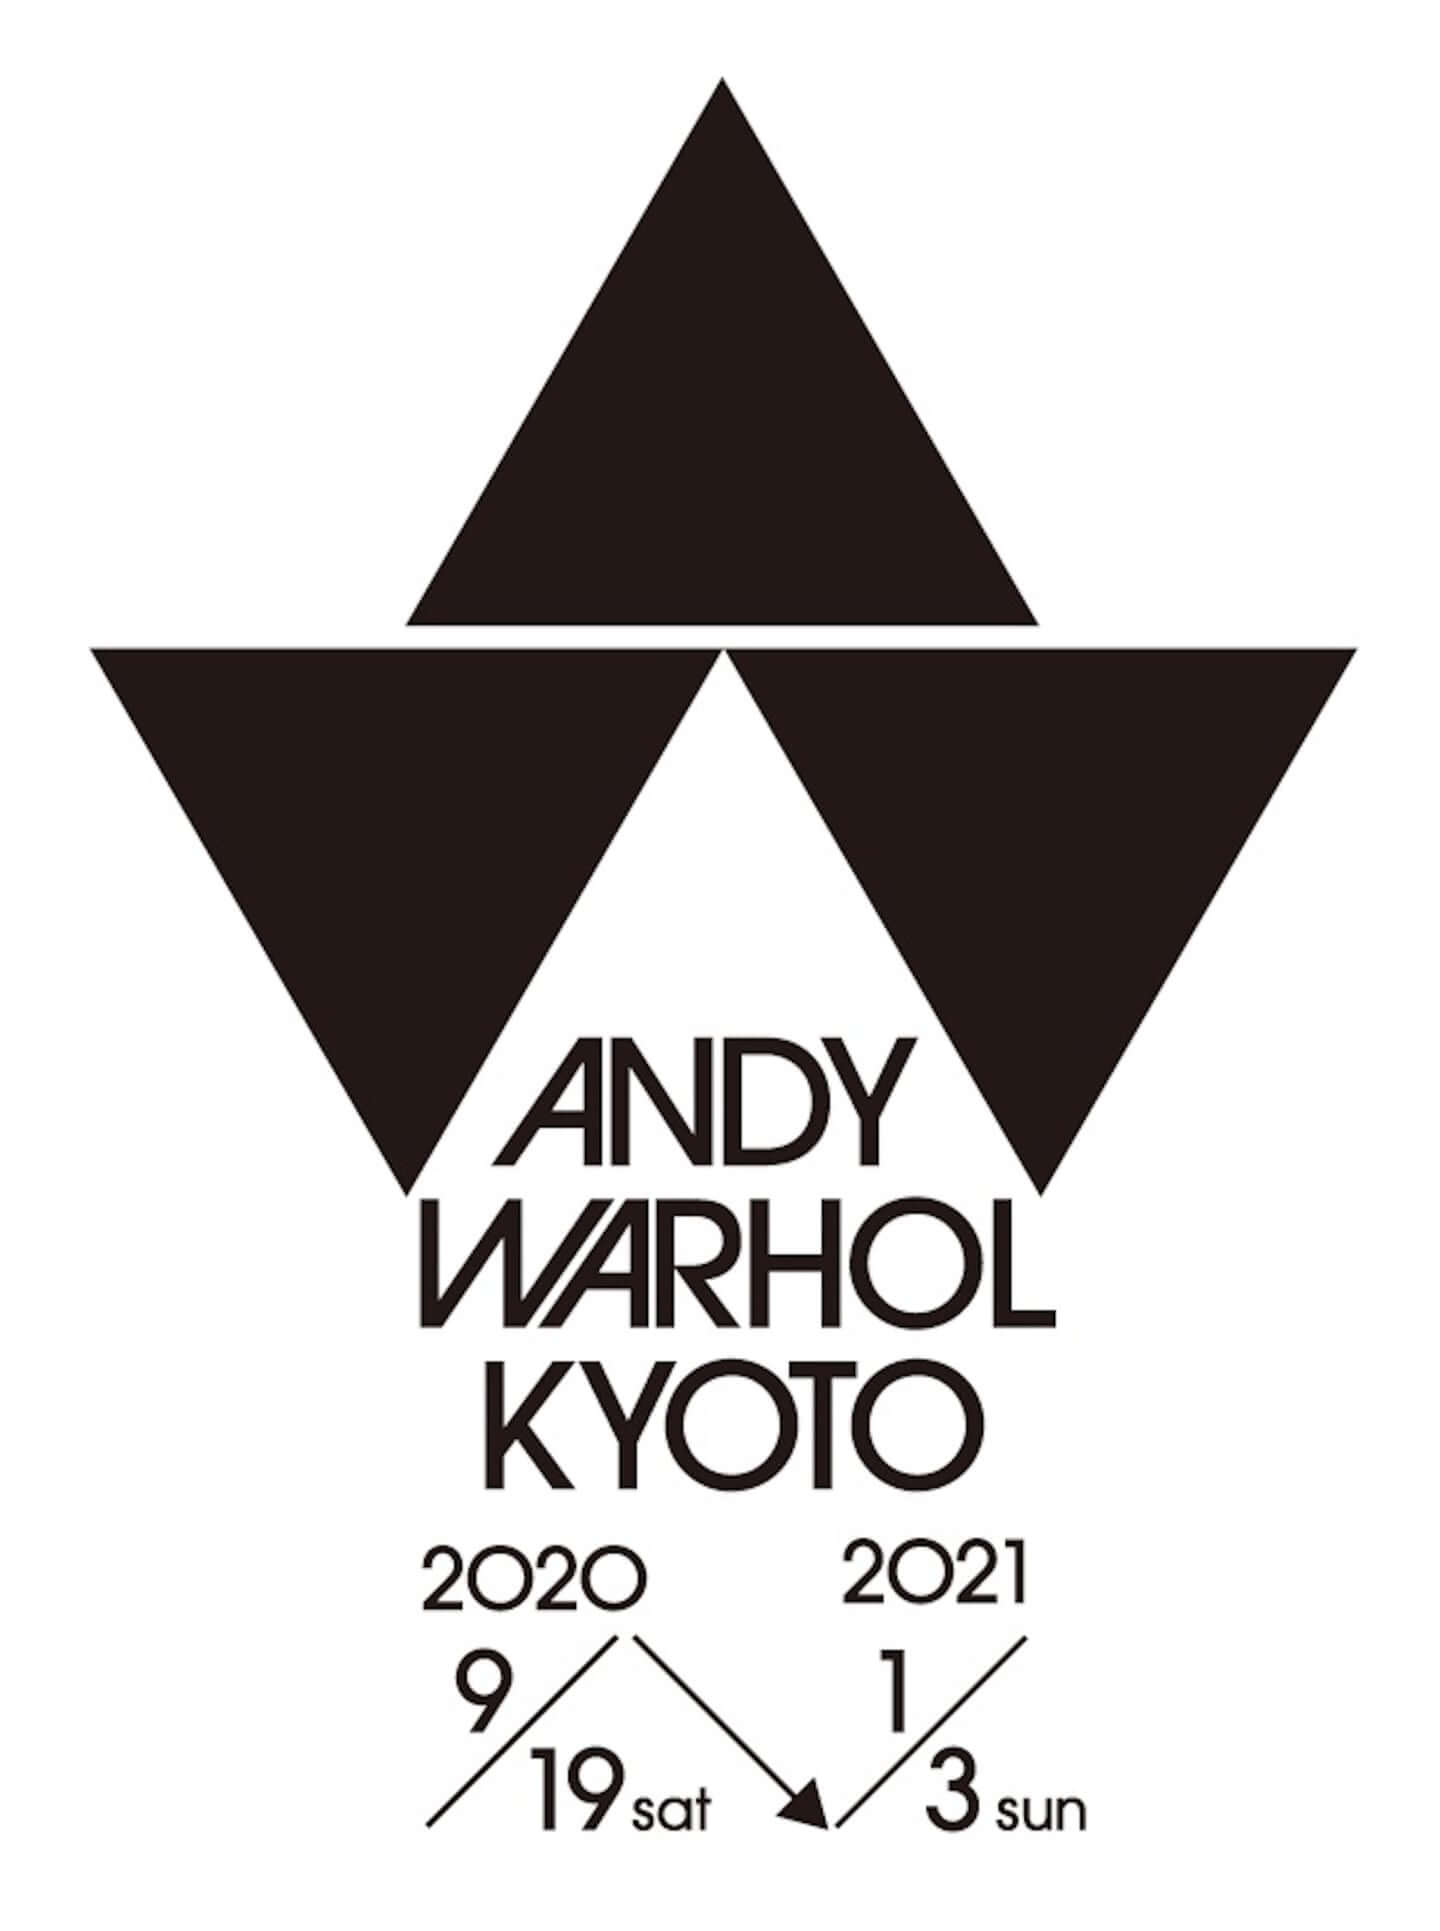 <ANDY WARHOL KYOTO>『三つのマリリン』『最後の晩餐』含む日本初公開作品100点以上、計200点が公開決定! artculture191119_andywarholkyoto_07-1440x1931